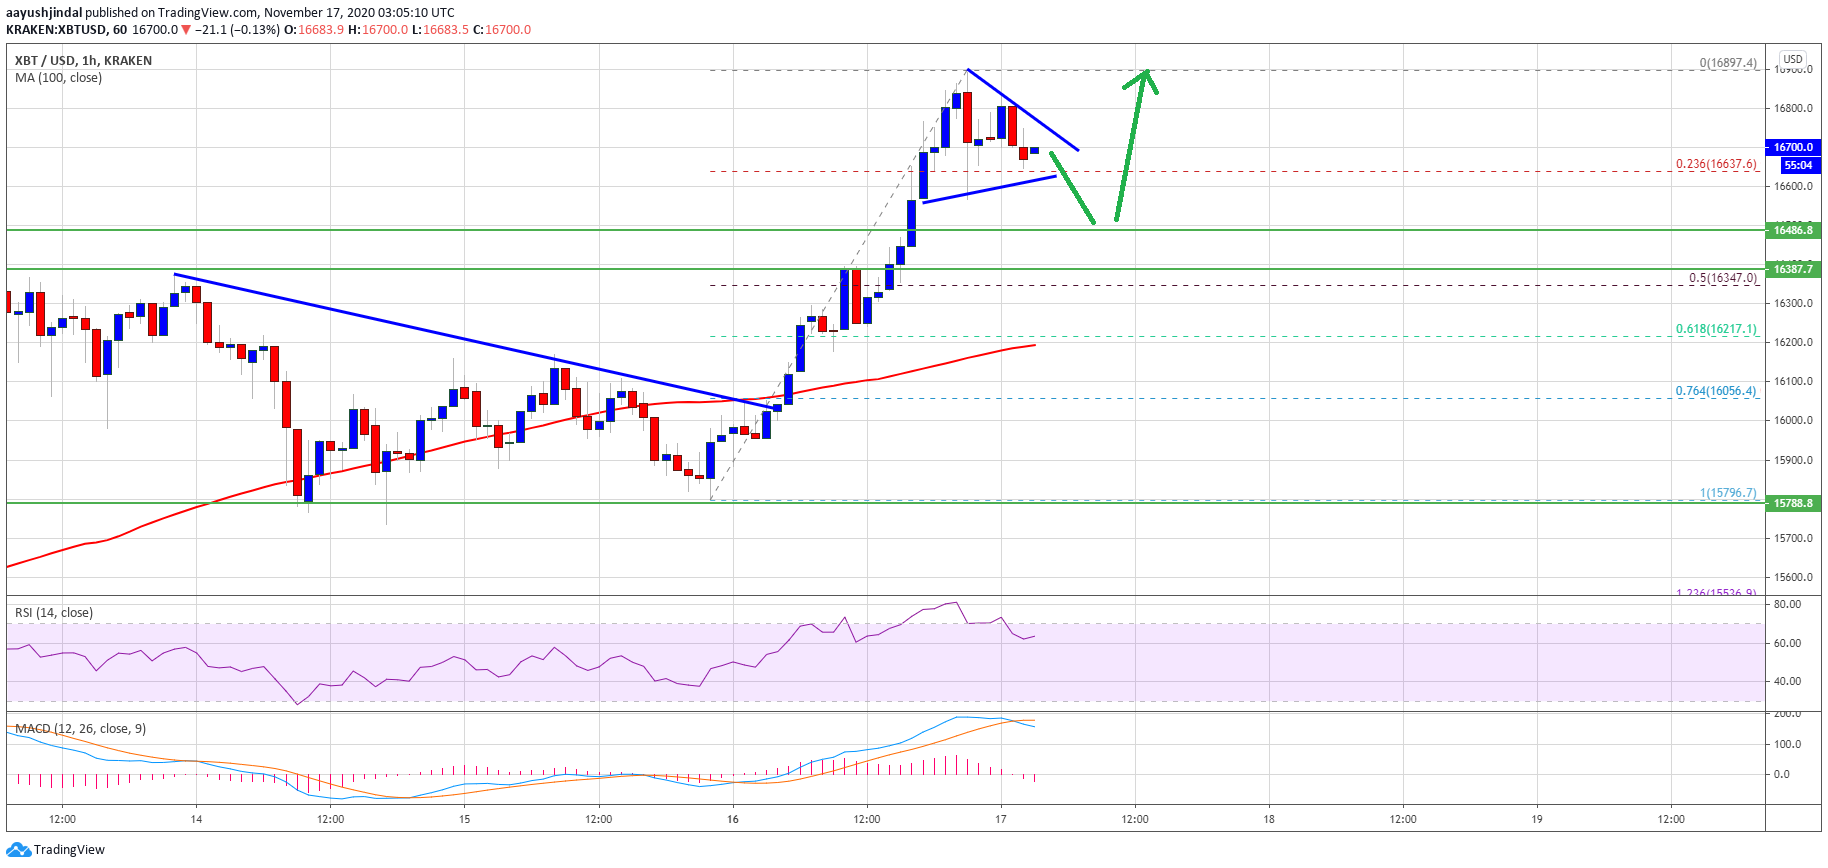 TA: Bitcoin Price Smashes Key Resistance, Why $17K Could Be Next